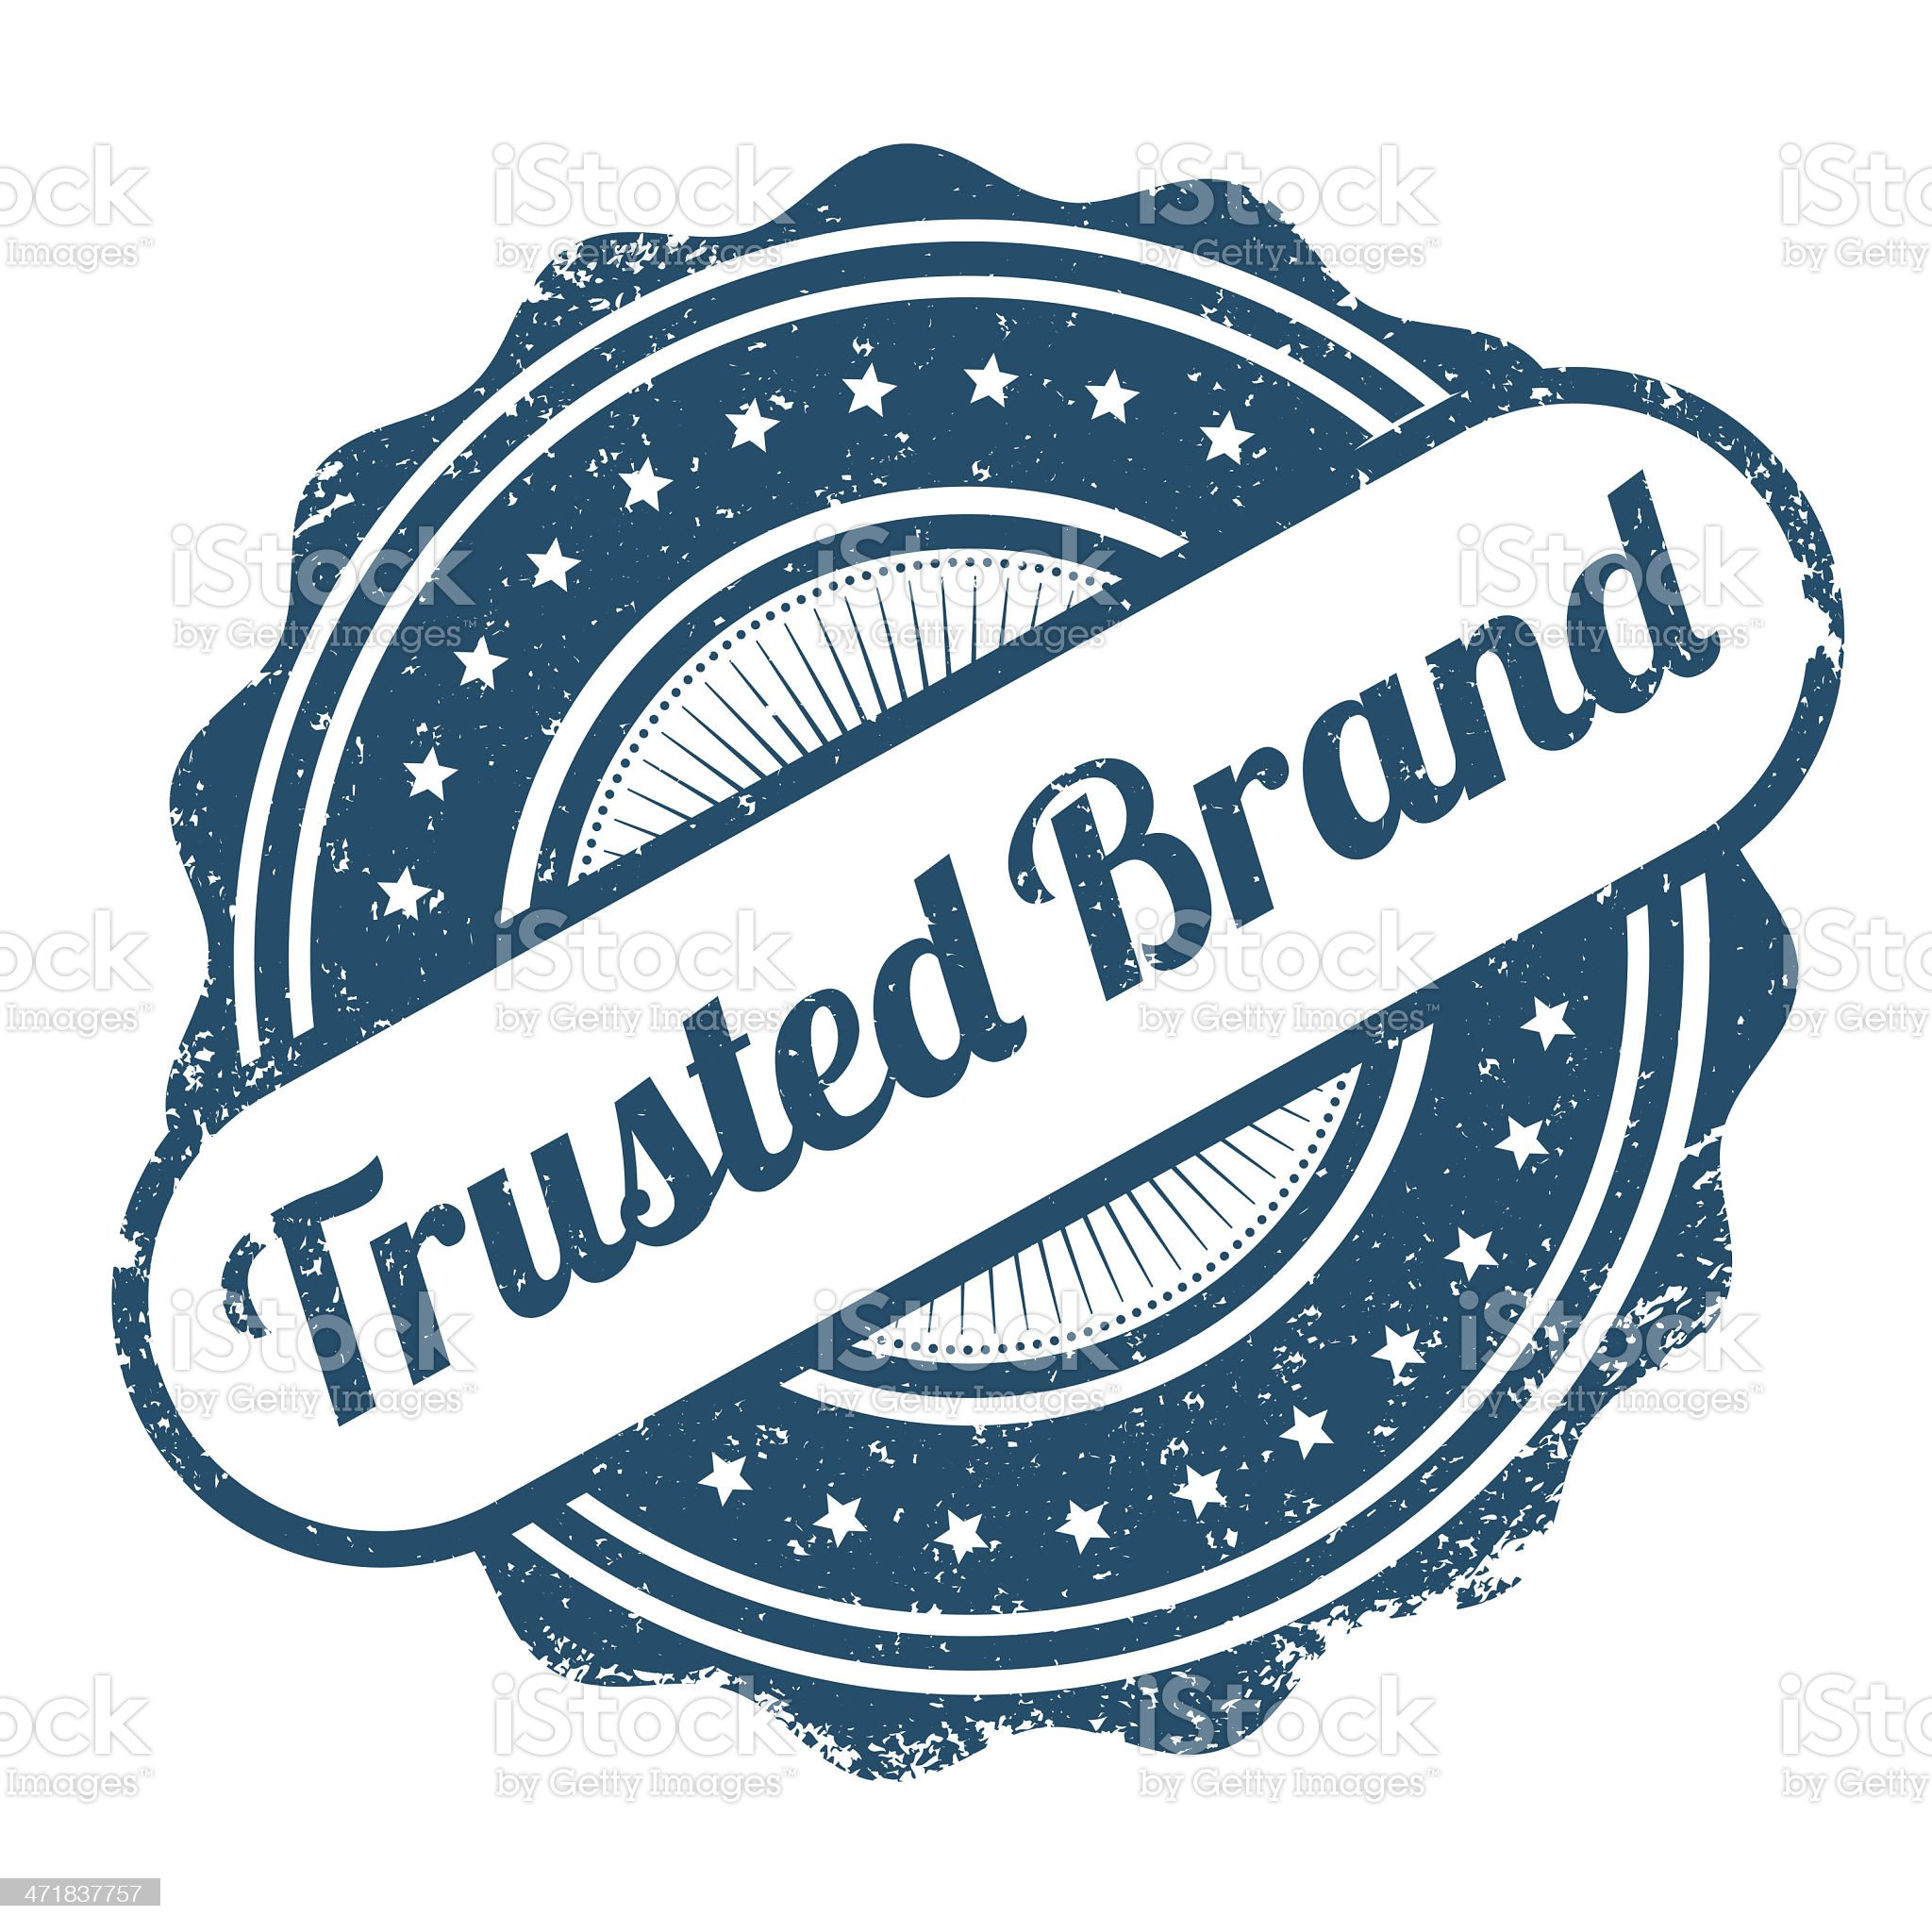 Trusted Brand royalty-free stock vector art